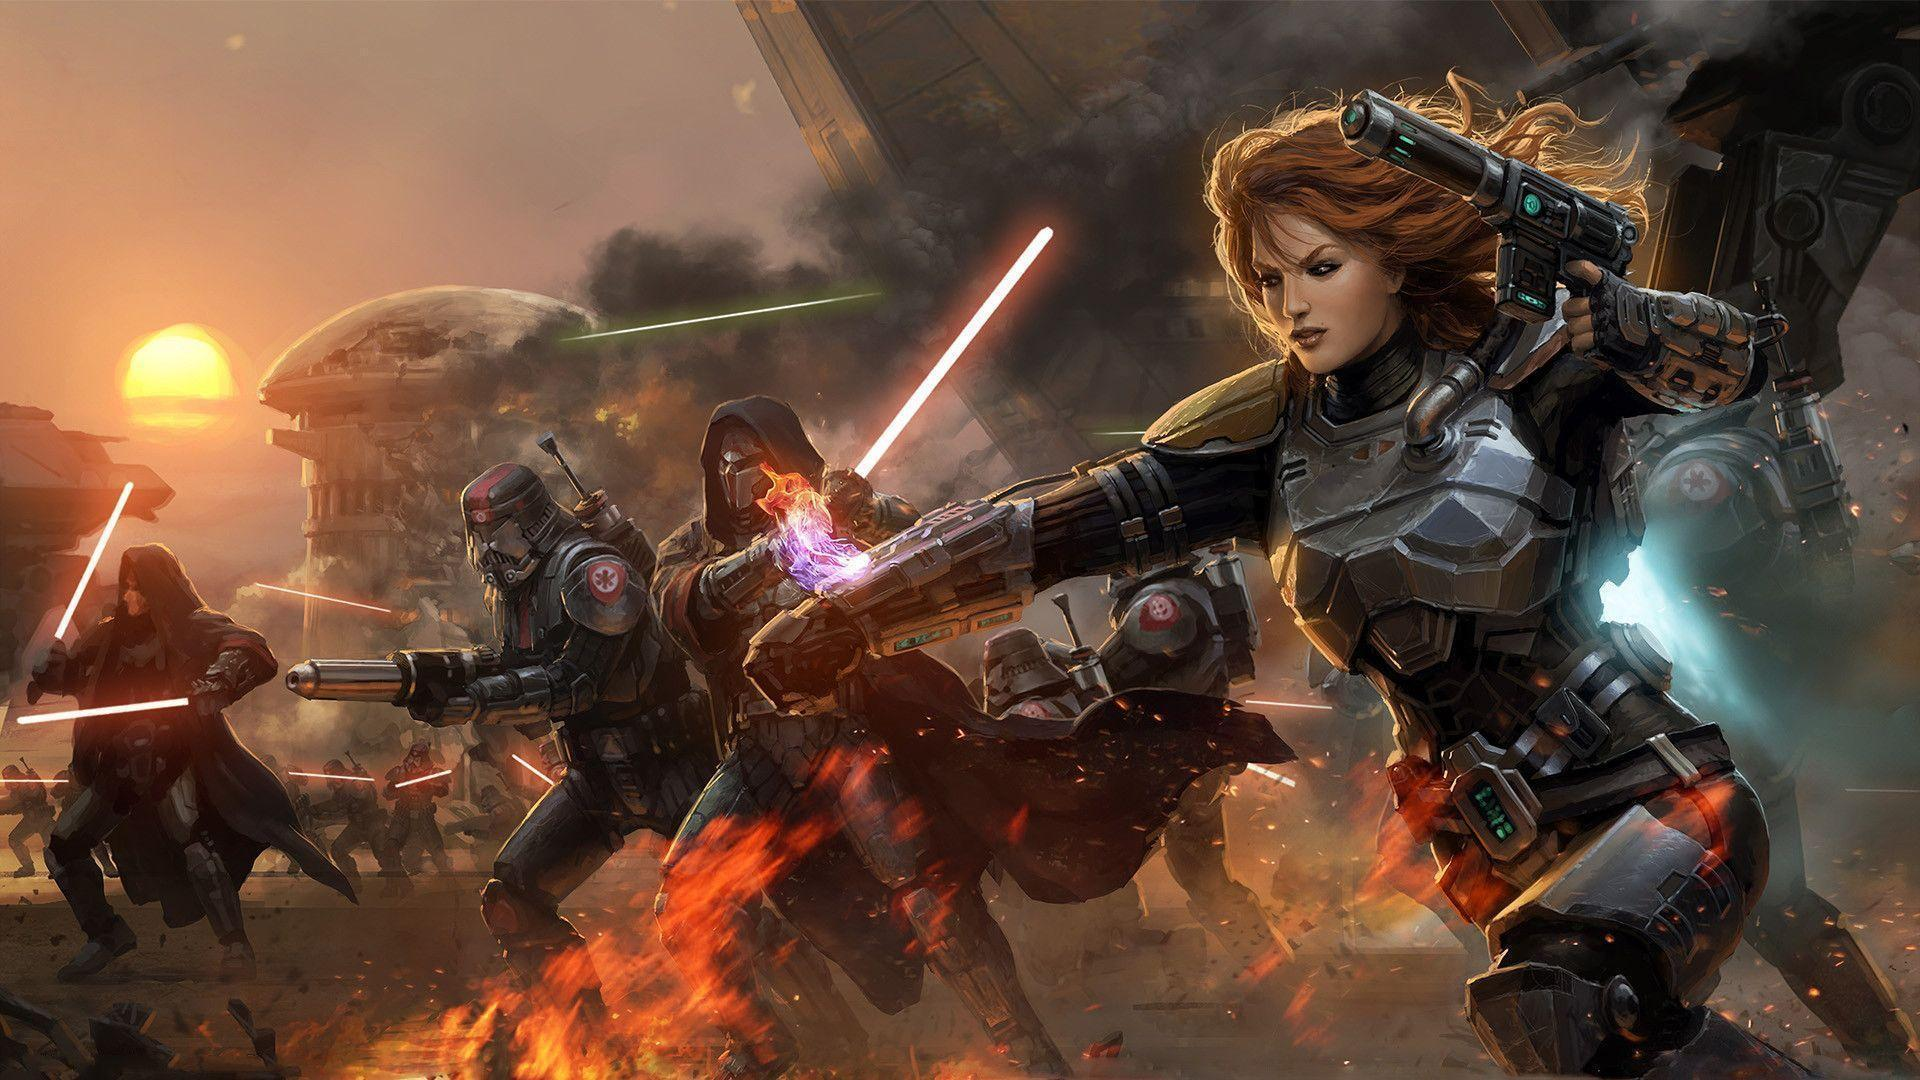 Star Wars The Old Republic Wallpapers 1920x1080 Wallpaper Cave